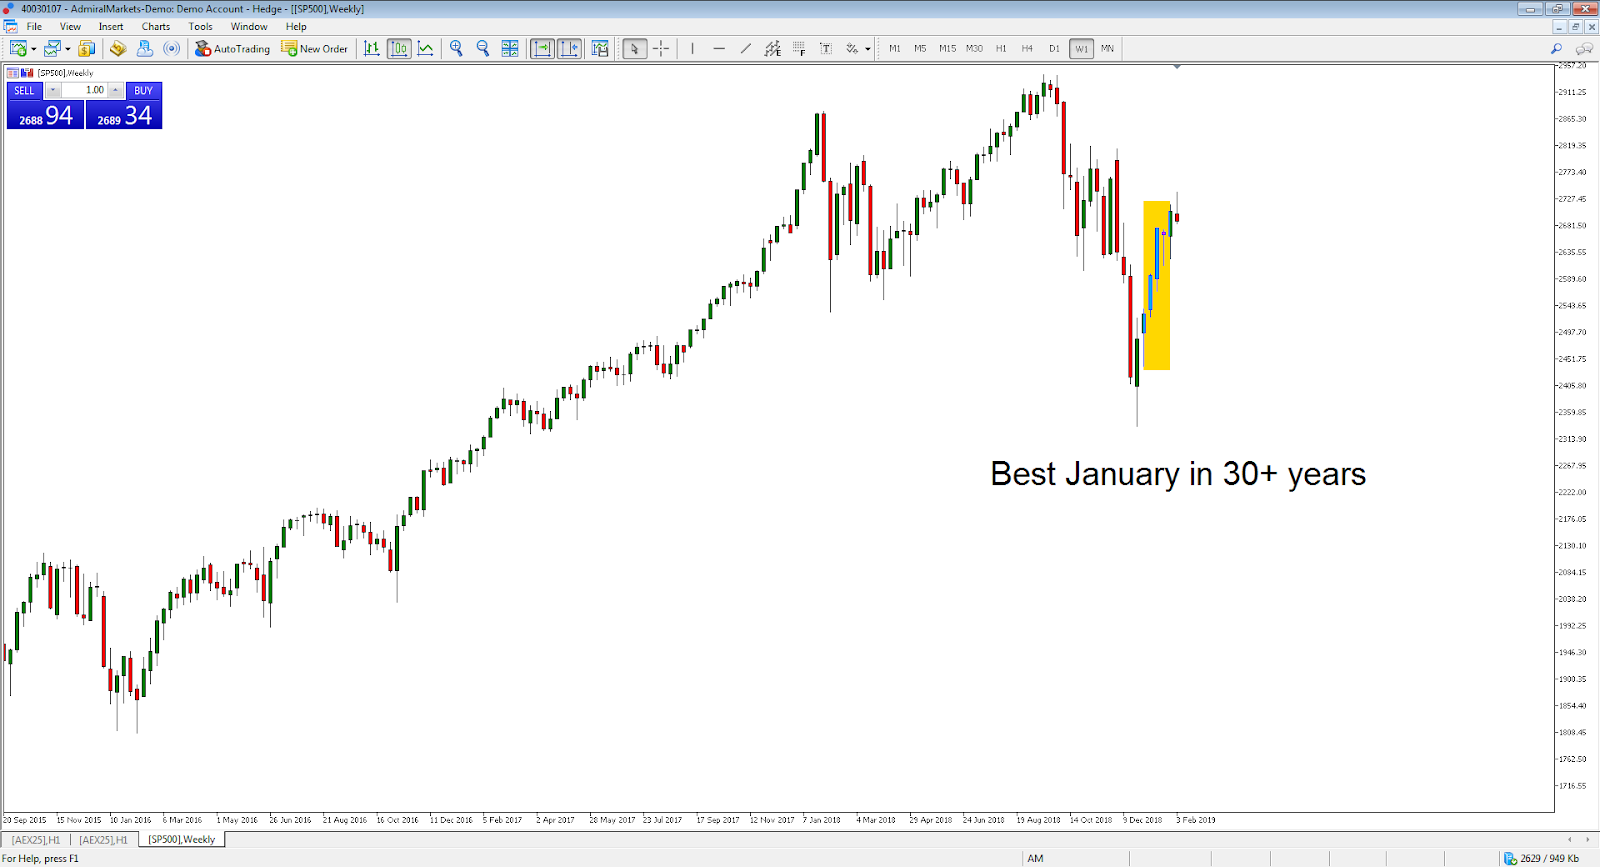 Chart showing the best January bump in over 30 years